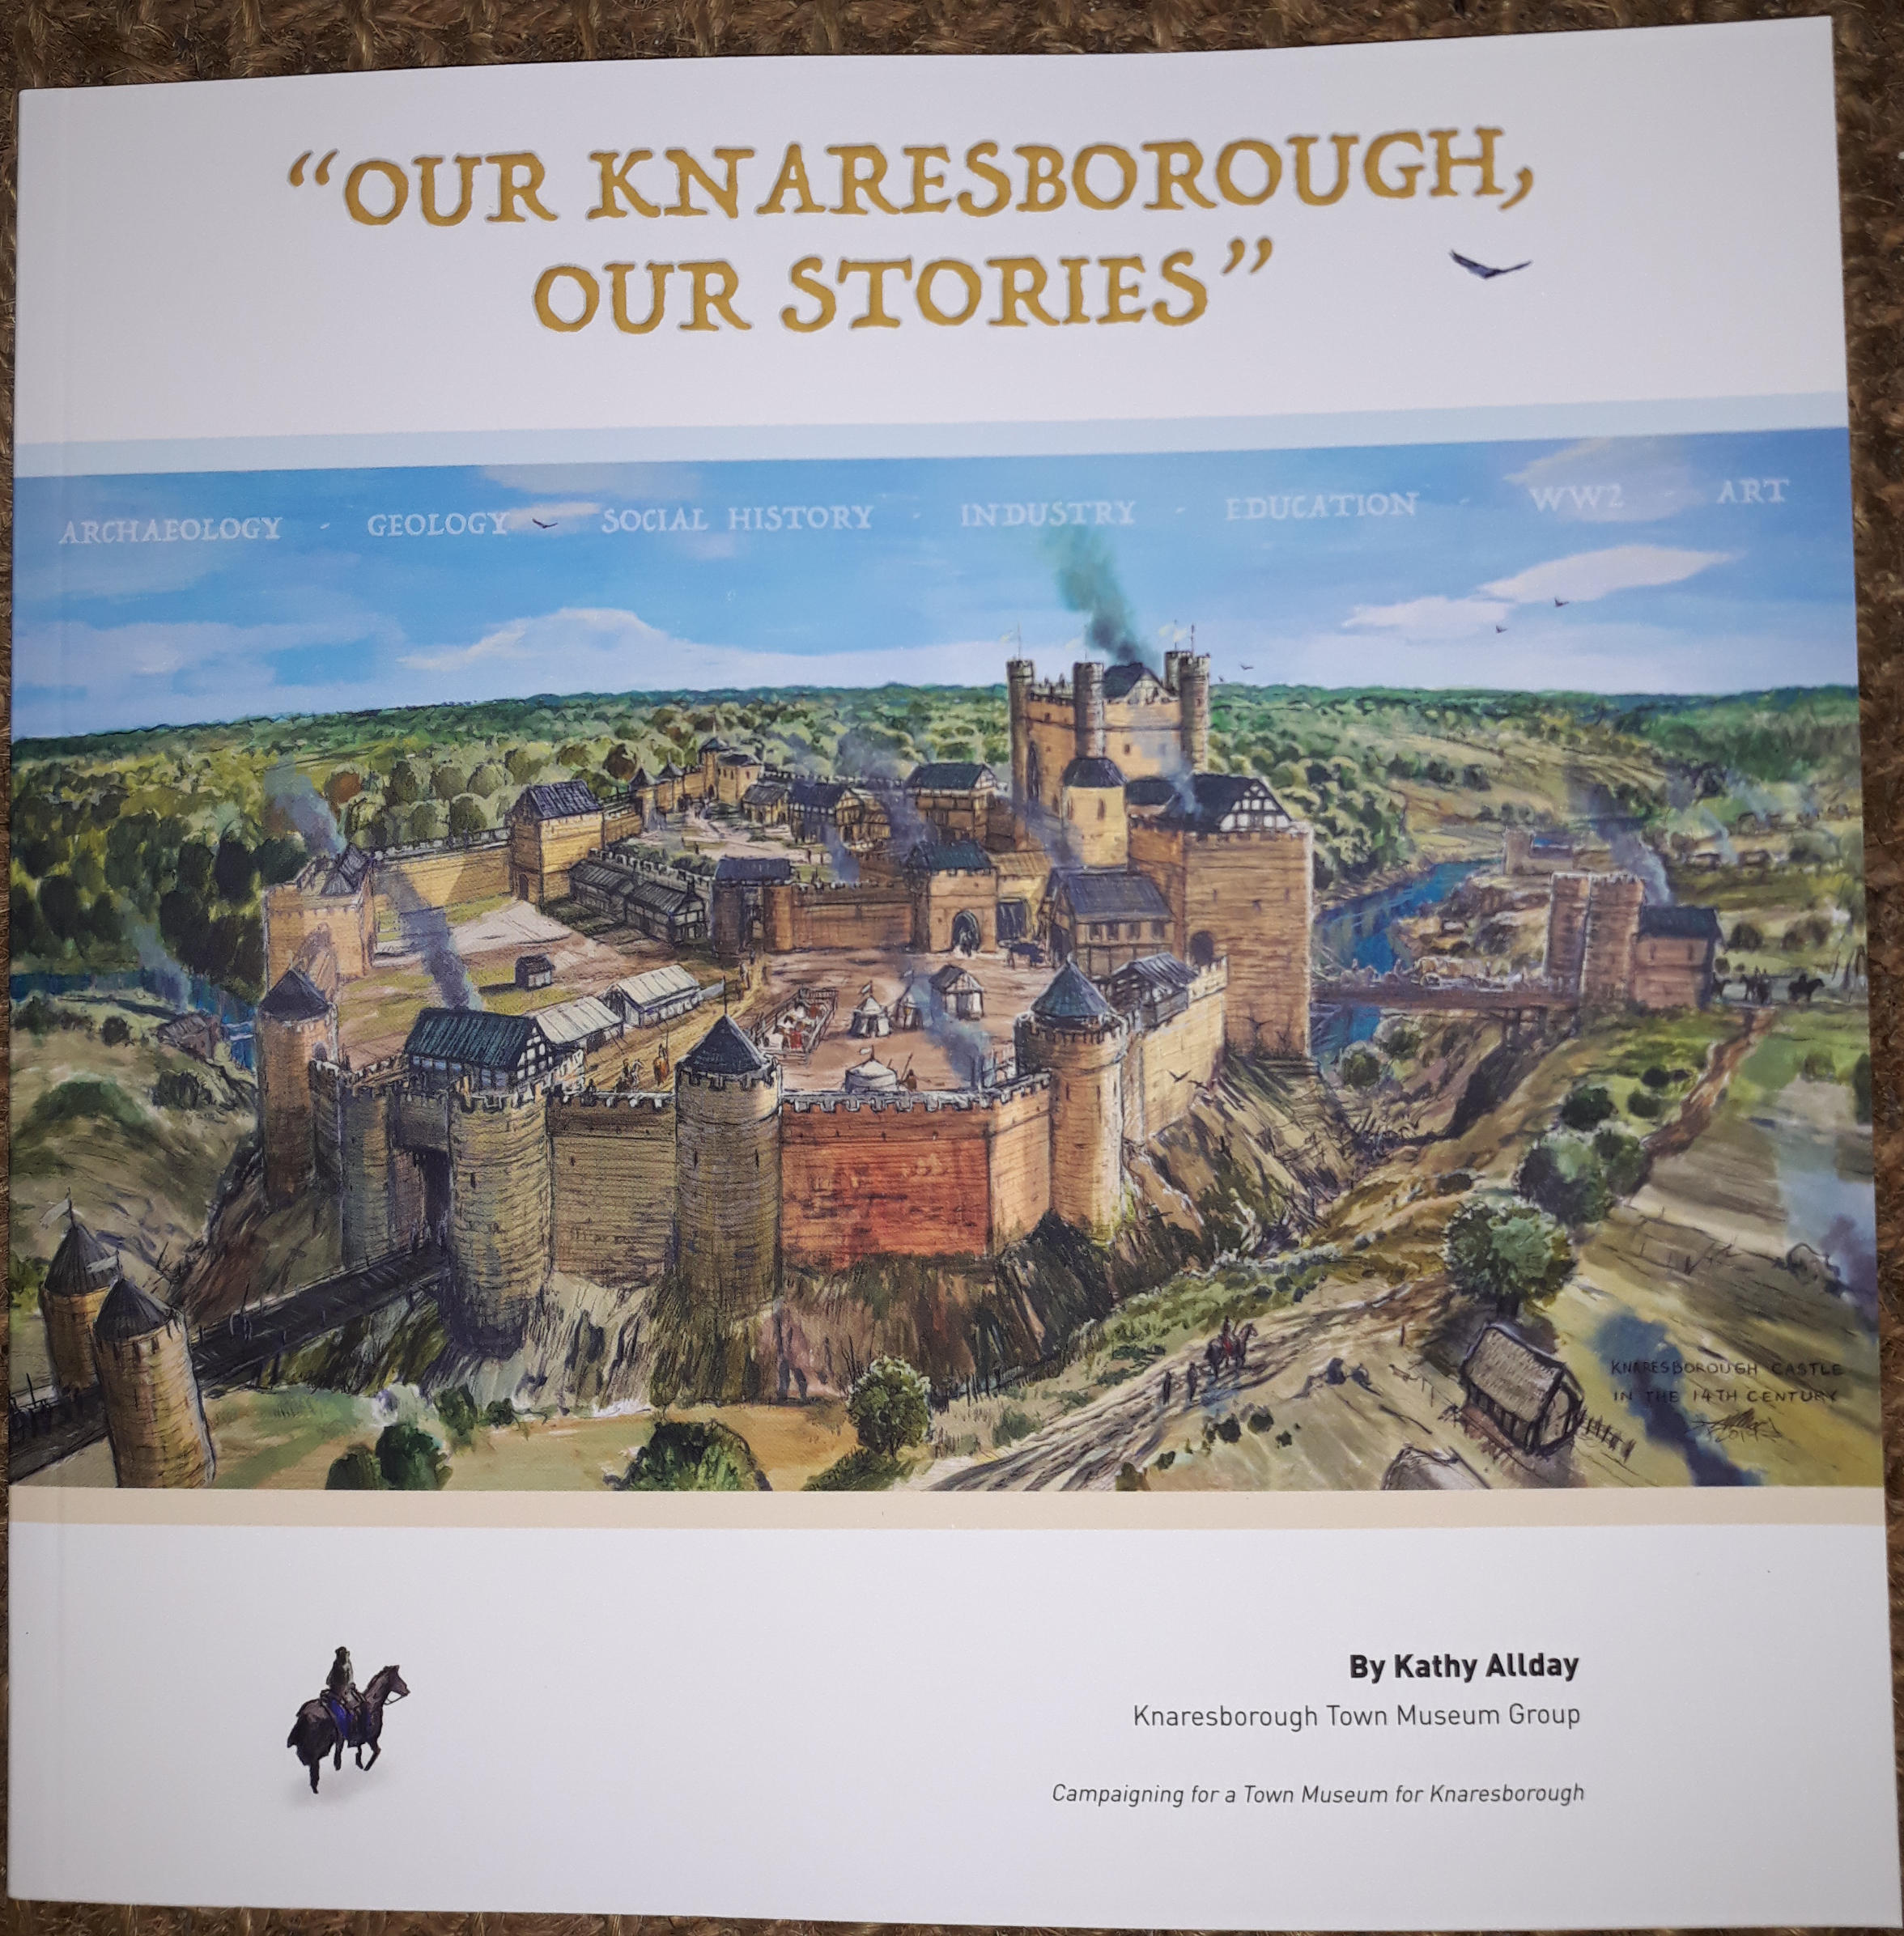 Our Knaresborough, Our Stories